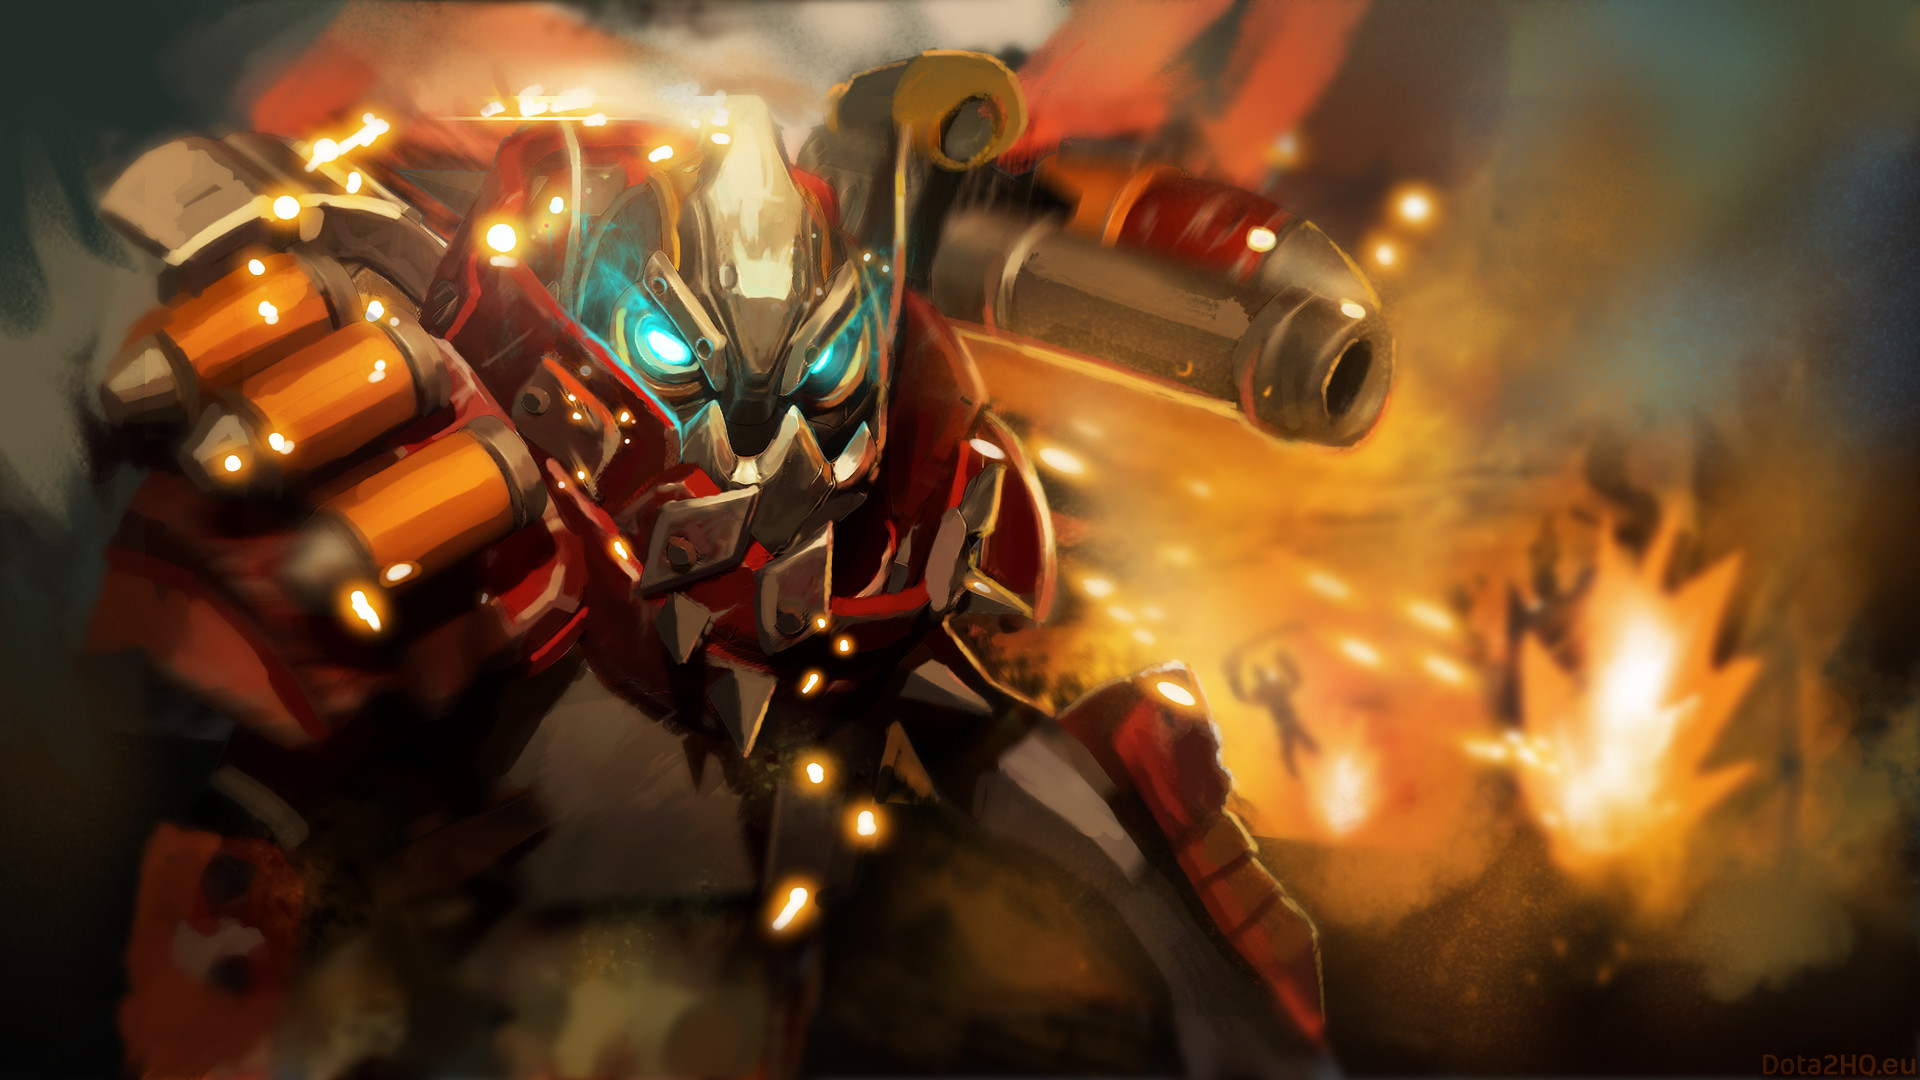 1920x1080 clockwerk robot dota 2 skirmish, Desktop Backgrounds HD 1080p